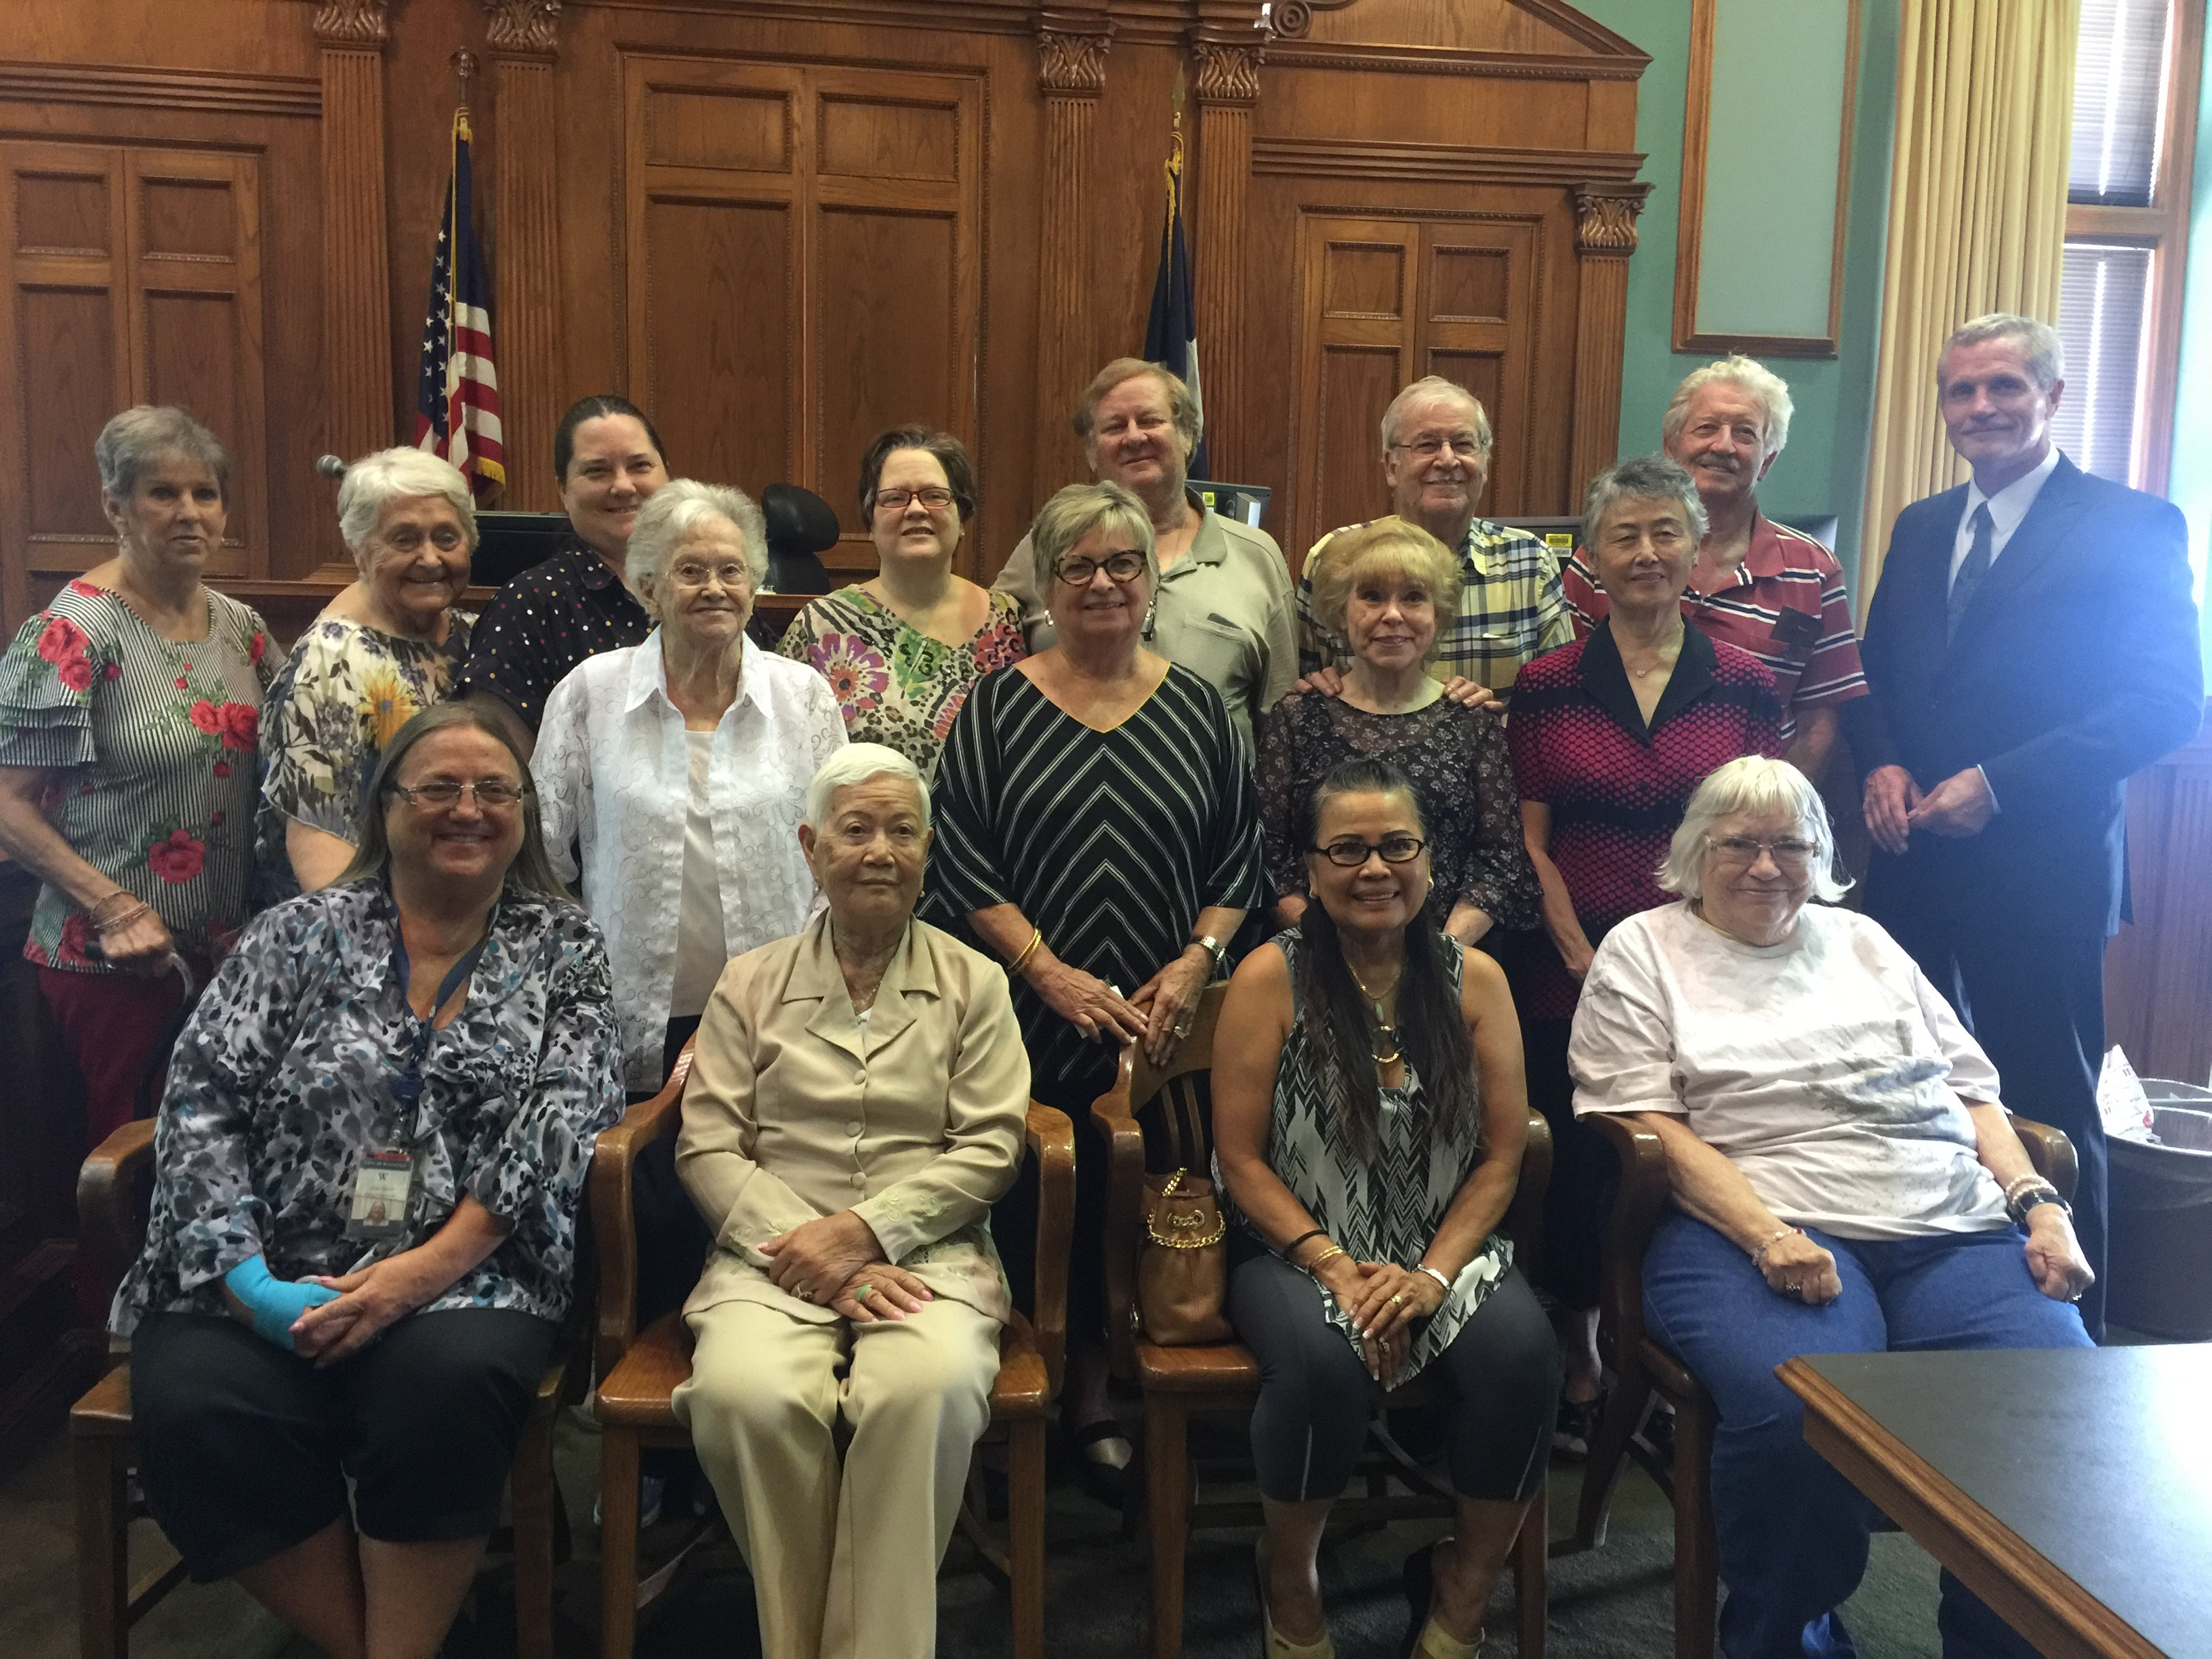 WATAUGA SENIOR CITIZENS VISIT 6.20.2018